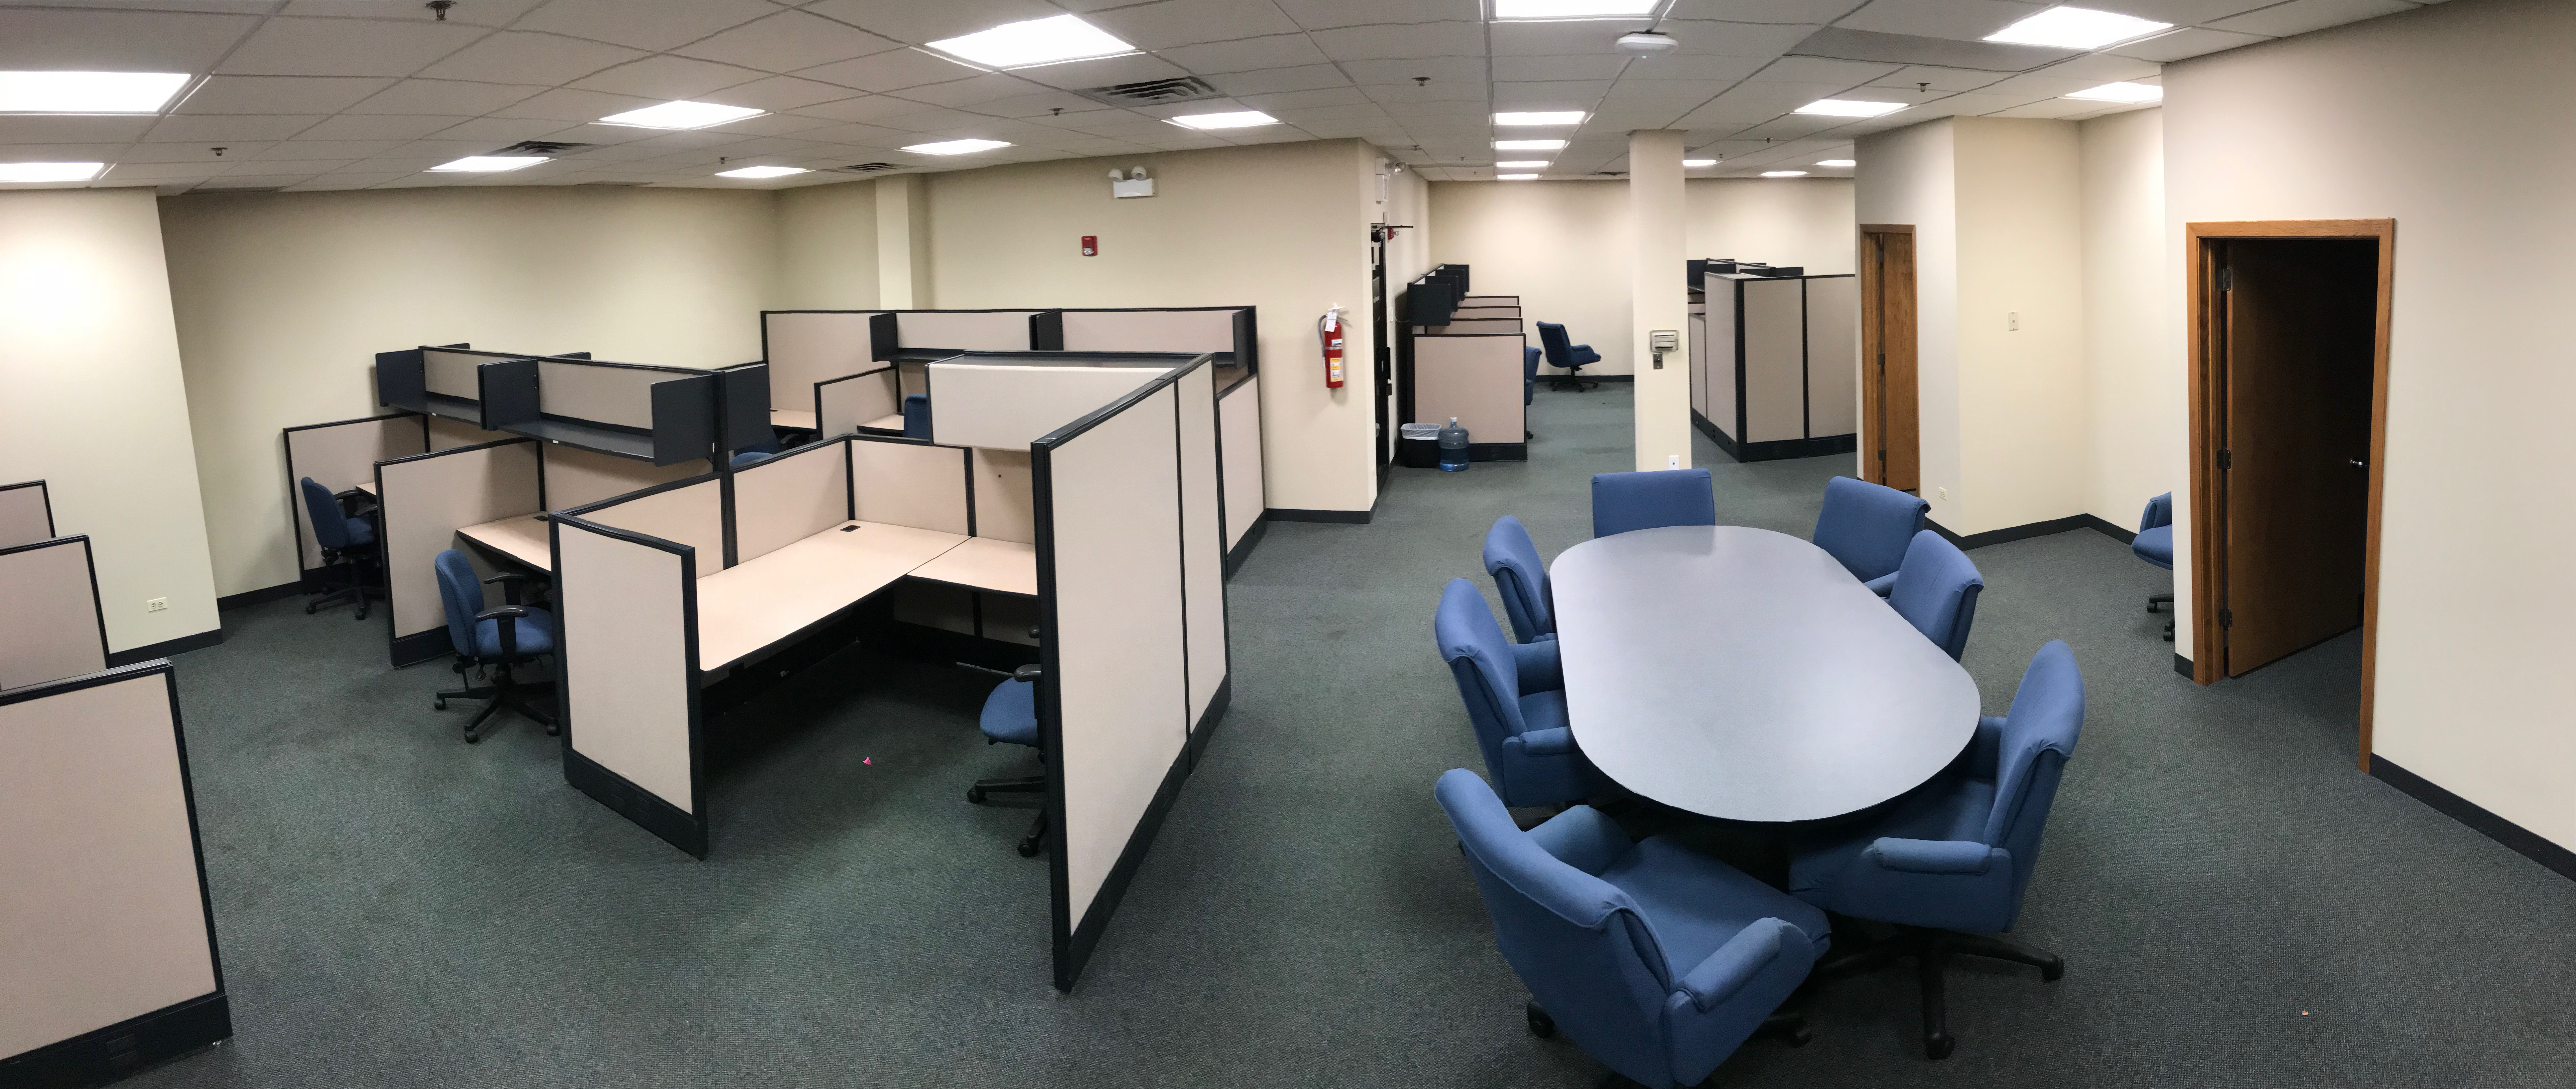 large office space. Large Office Space With Board Meeting Table